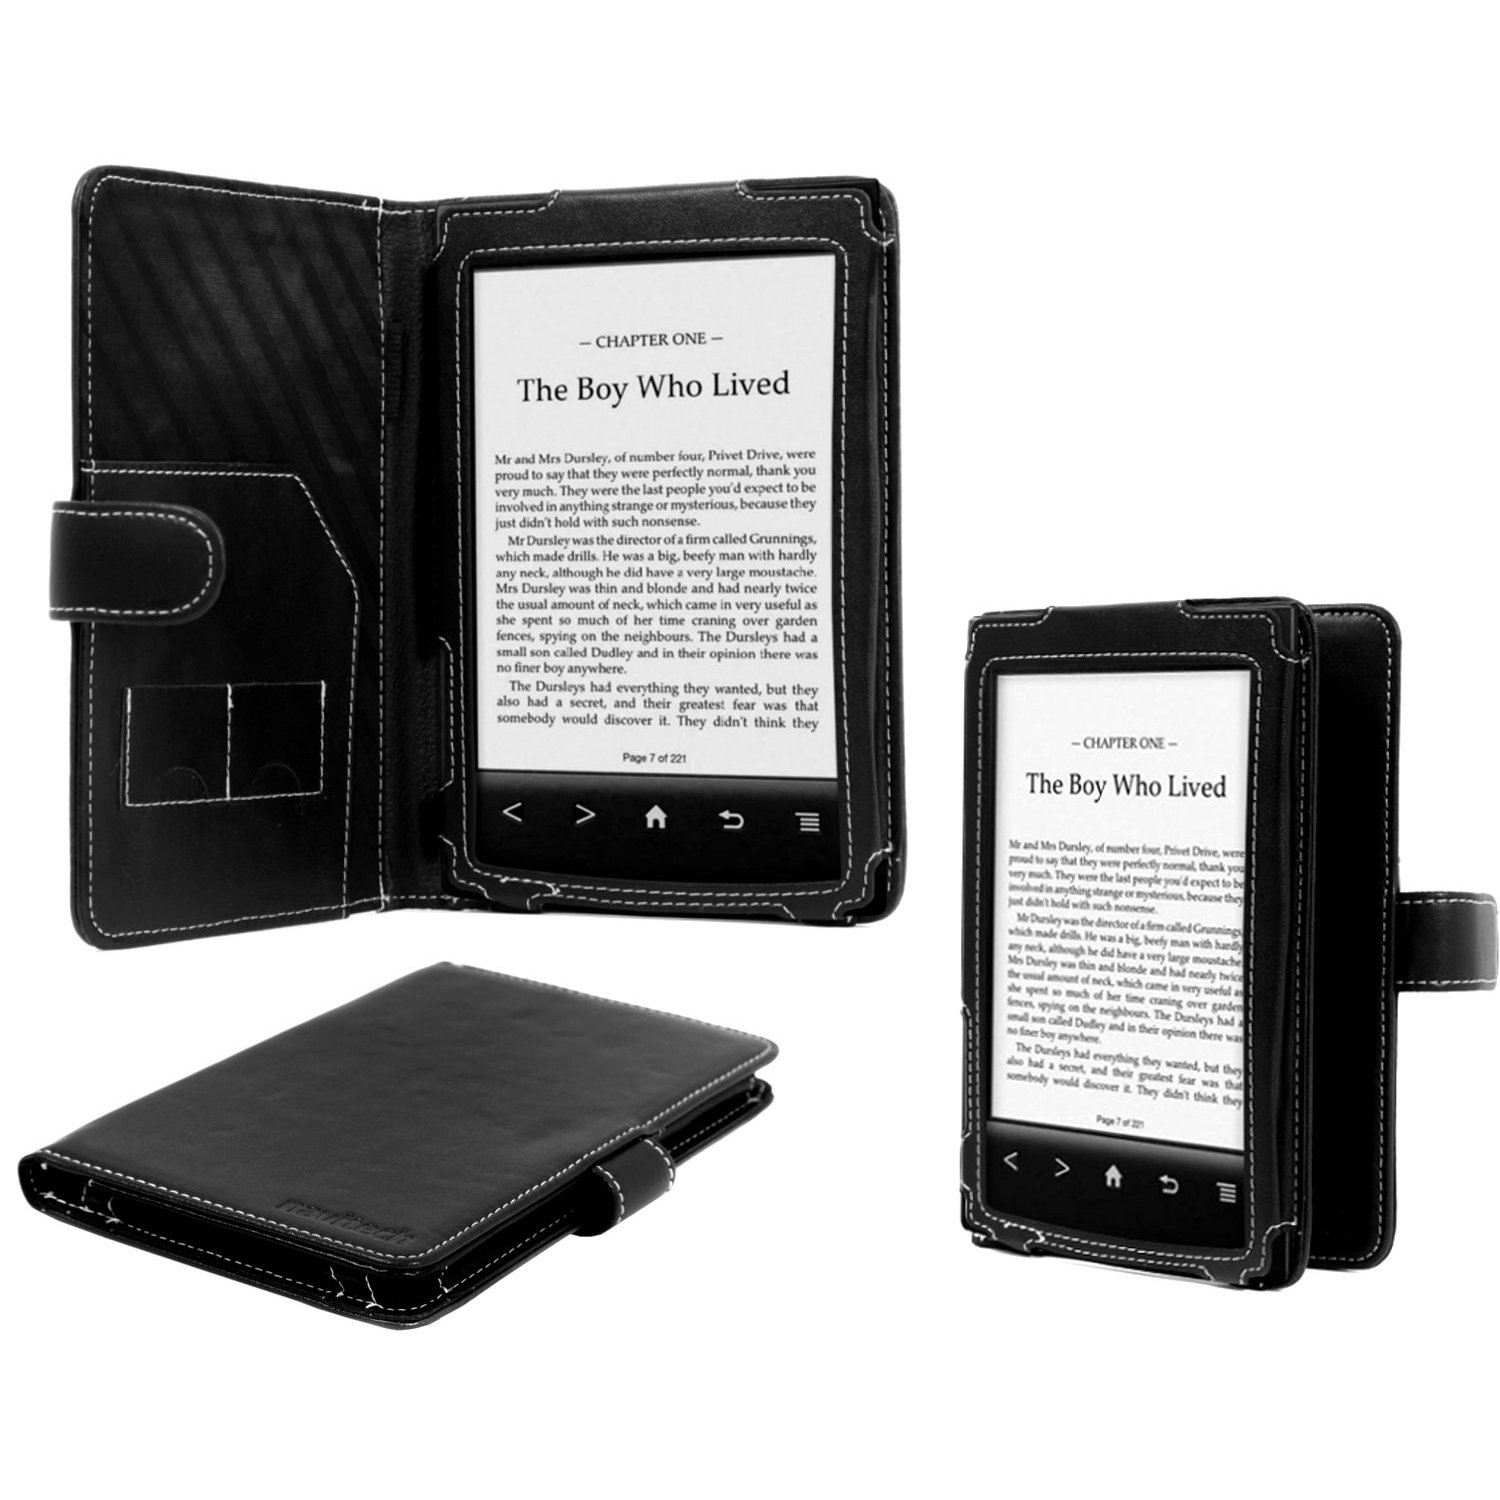 sonyreader2013